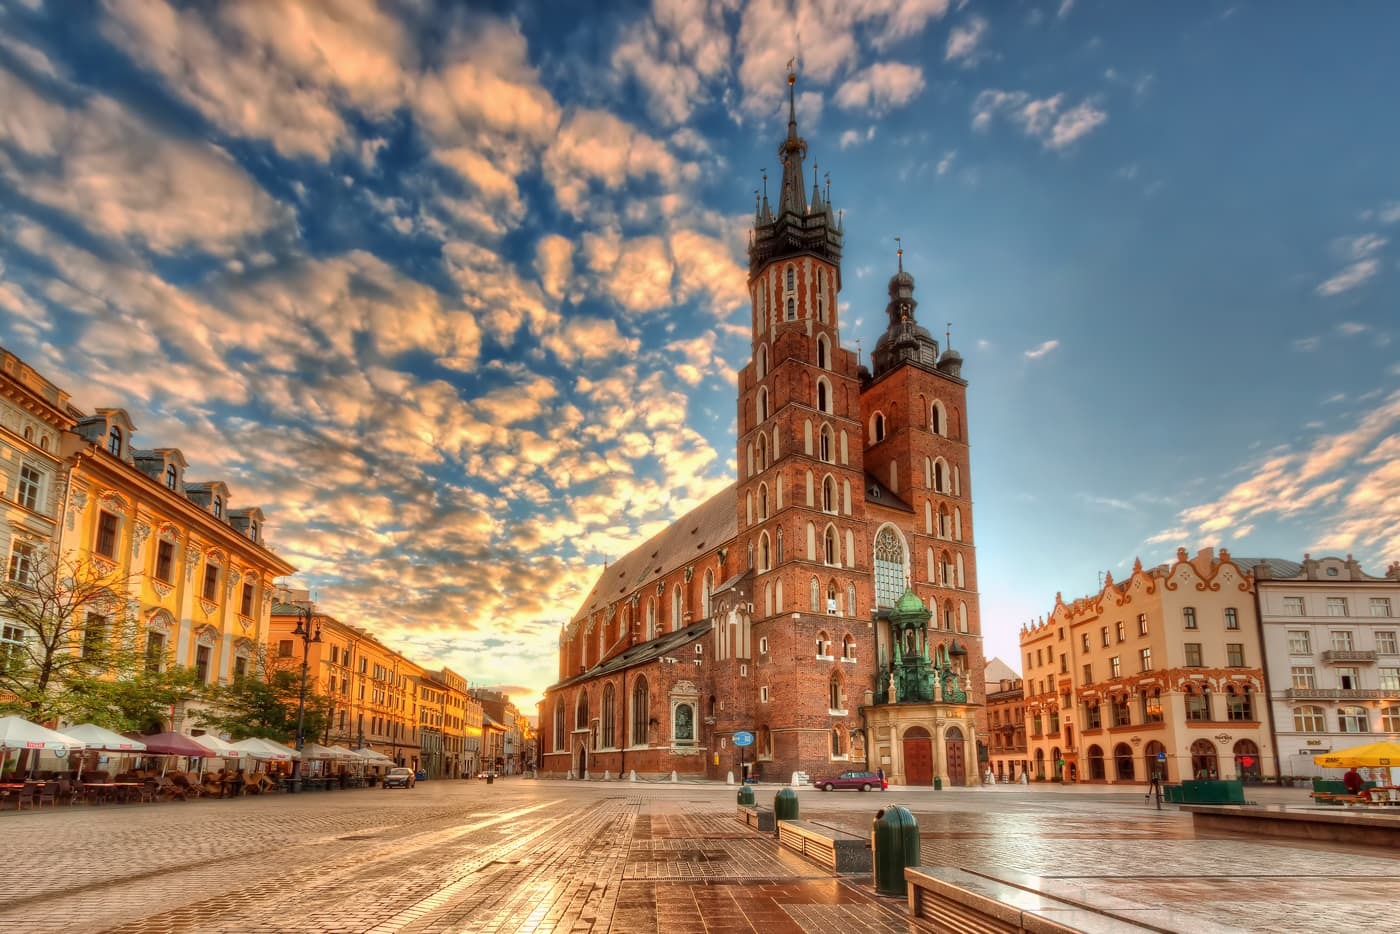 St Mary Basilica in Krakow, Poland